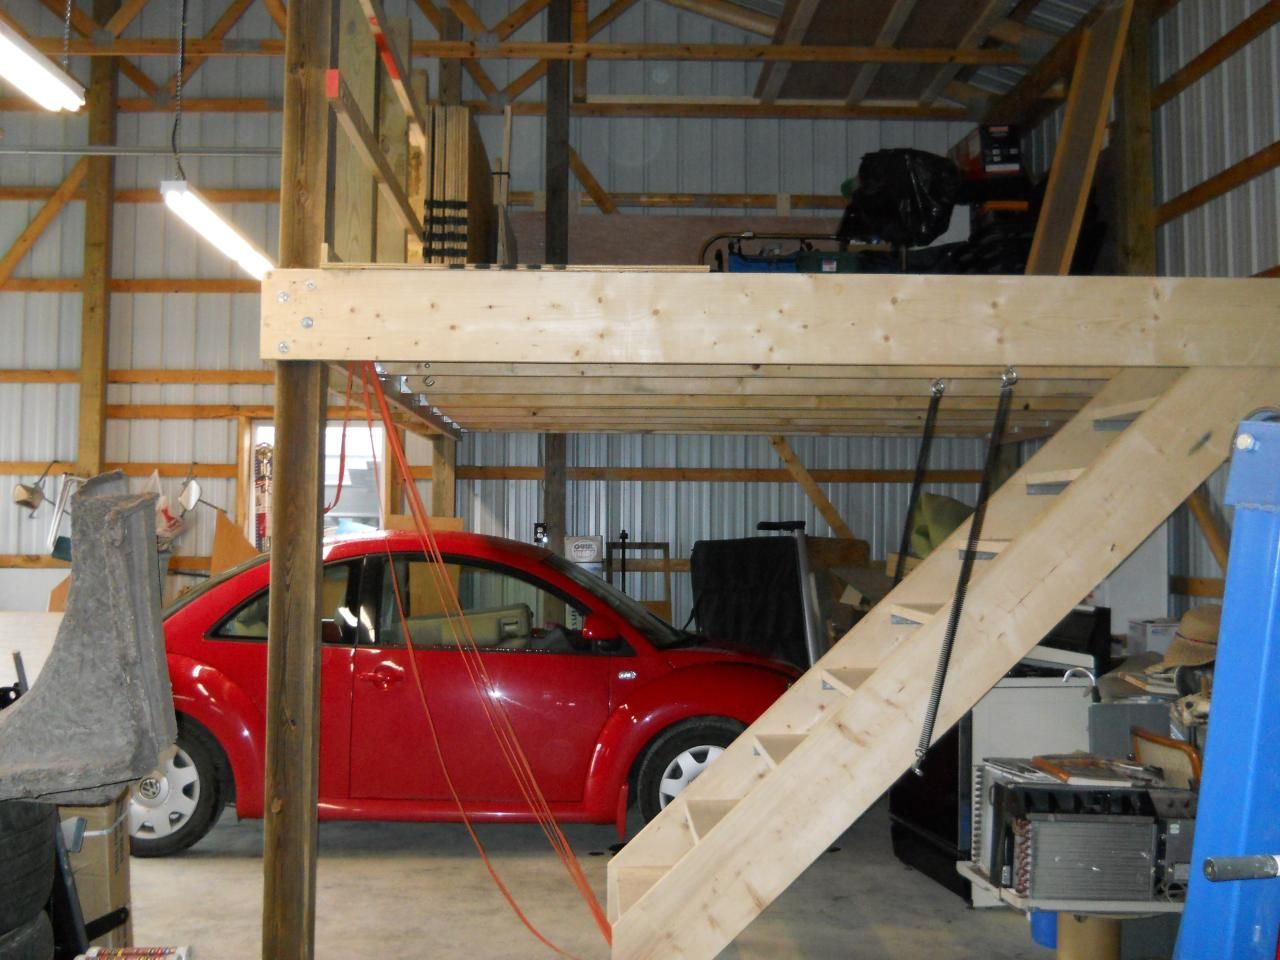 Garage Attic Loft Google Search Garage Shop Ideas